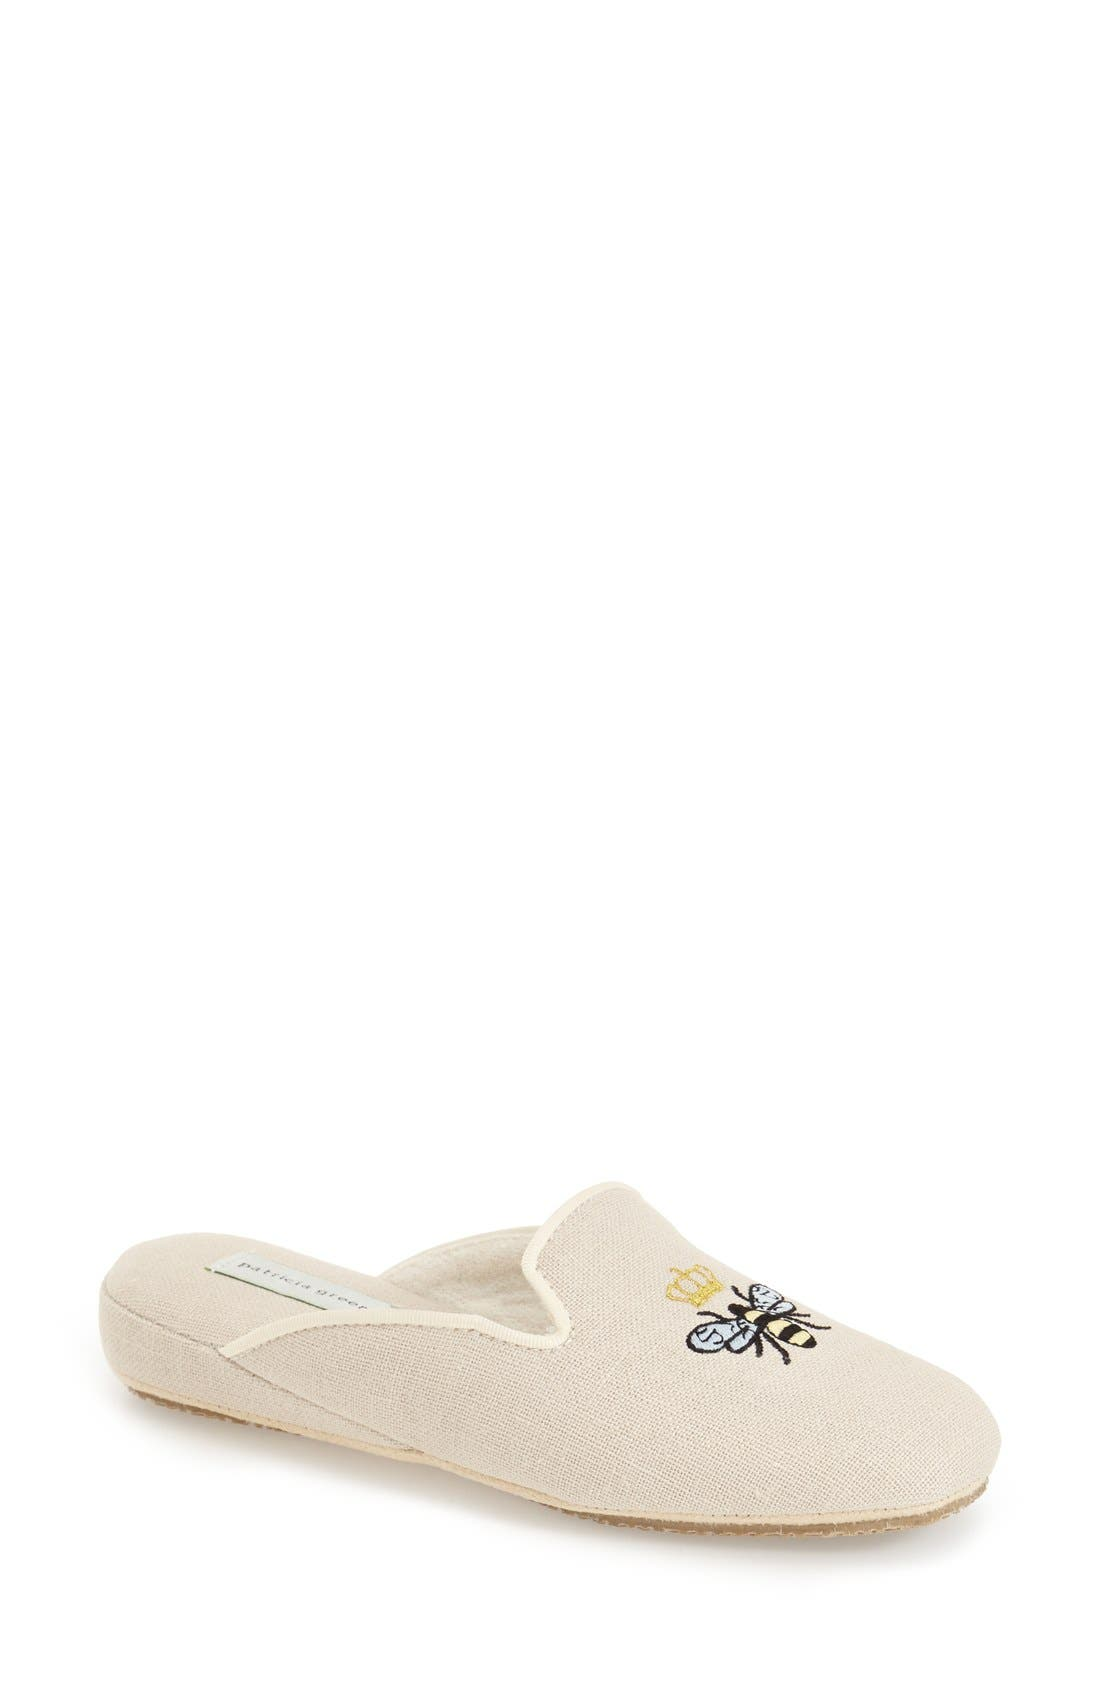 'Queen Bee' Embroidered Slipper,                             Main thumbnail 1, color,                             Natural